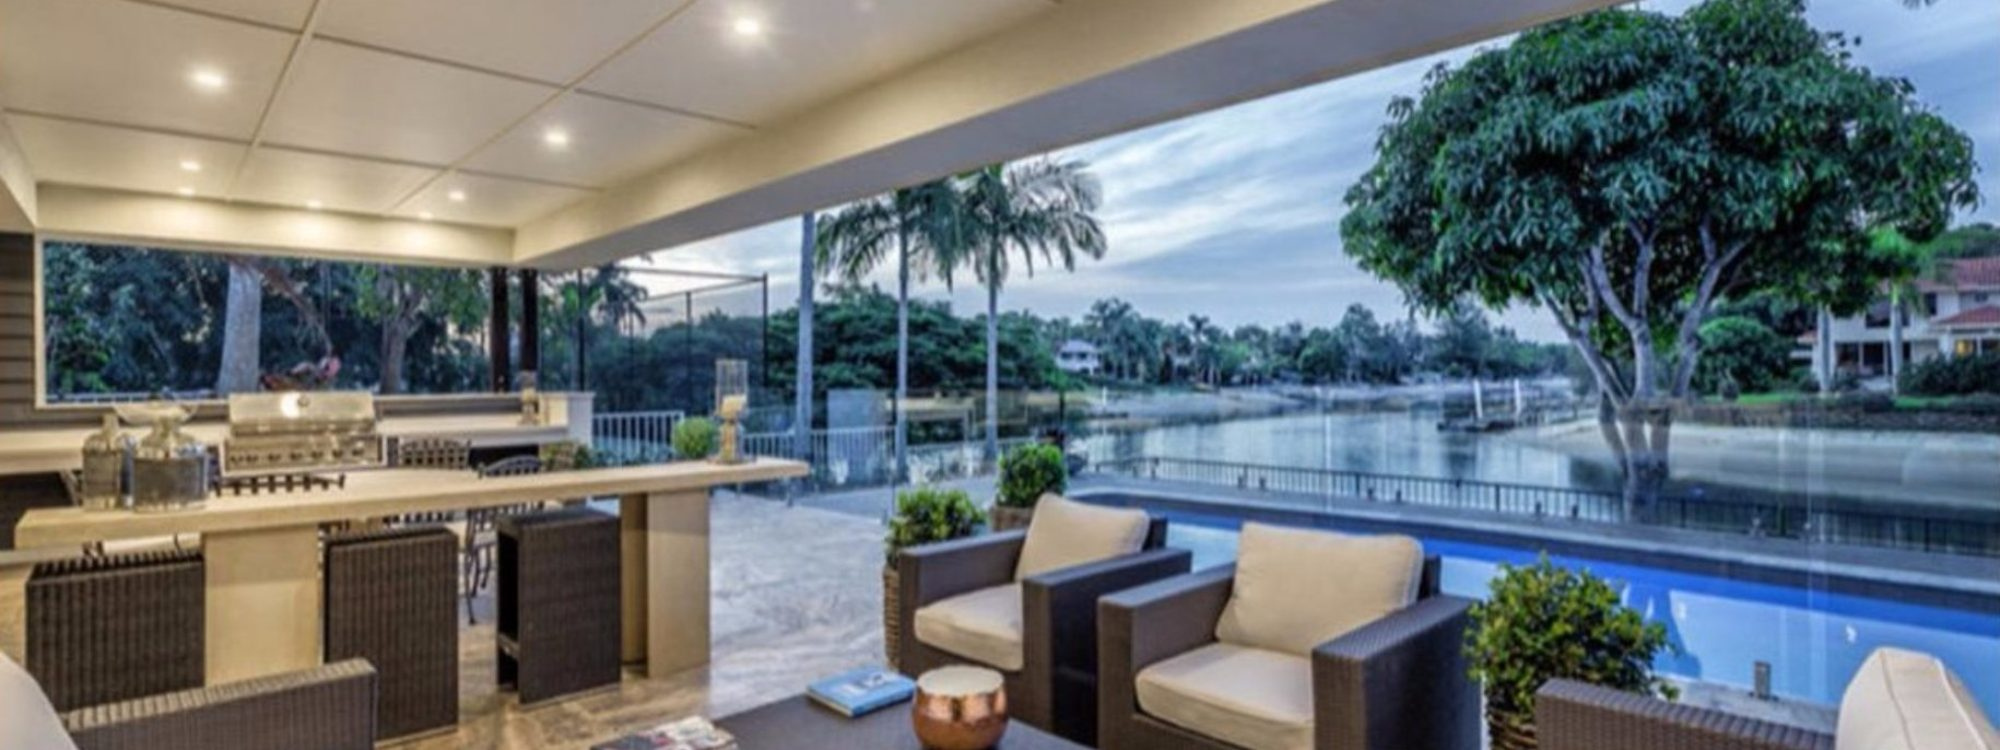 Casa Royale - Broadbeach Waters - Outdoor entertainment area